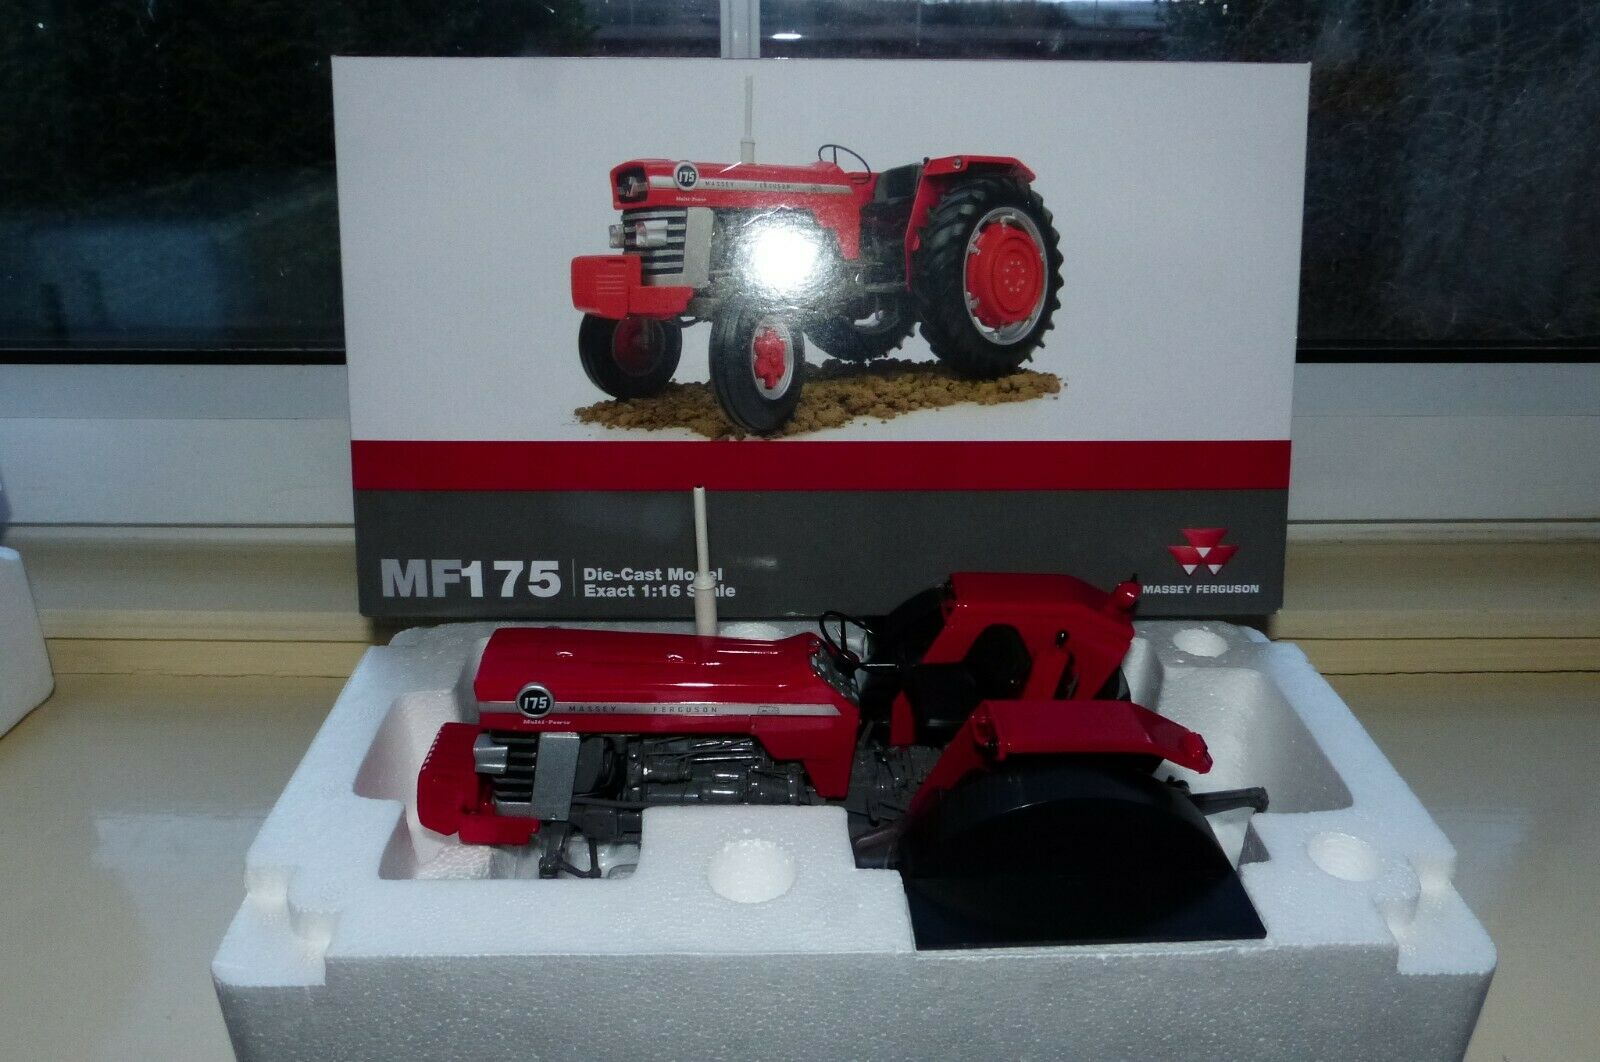 Universal Hobbies No 2906 is is the model of the Massey Ferguson 175 tractor New